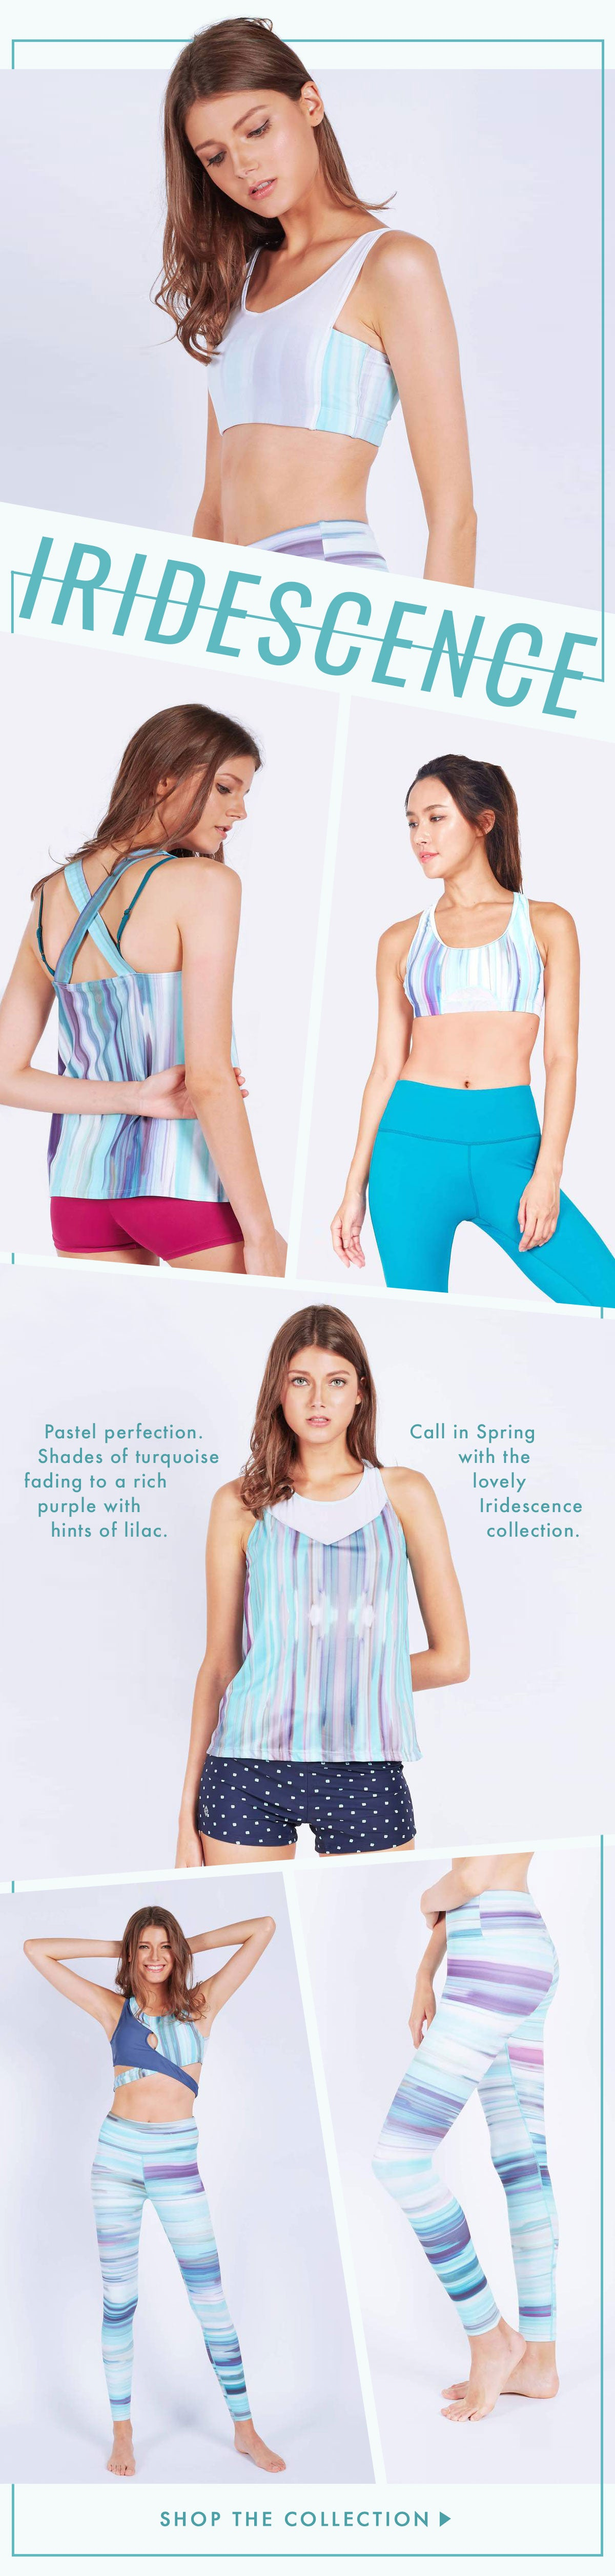 FUNFIT: The Iridescence collection